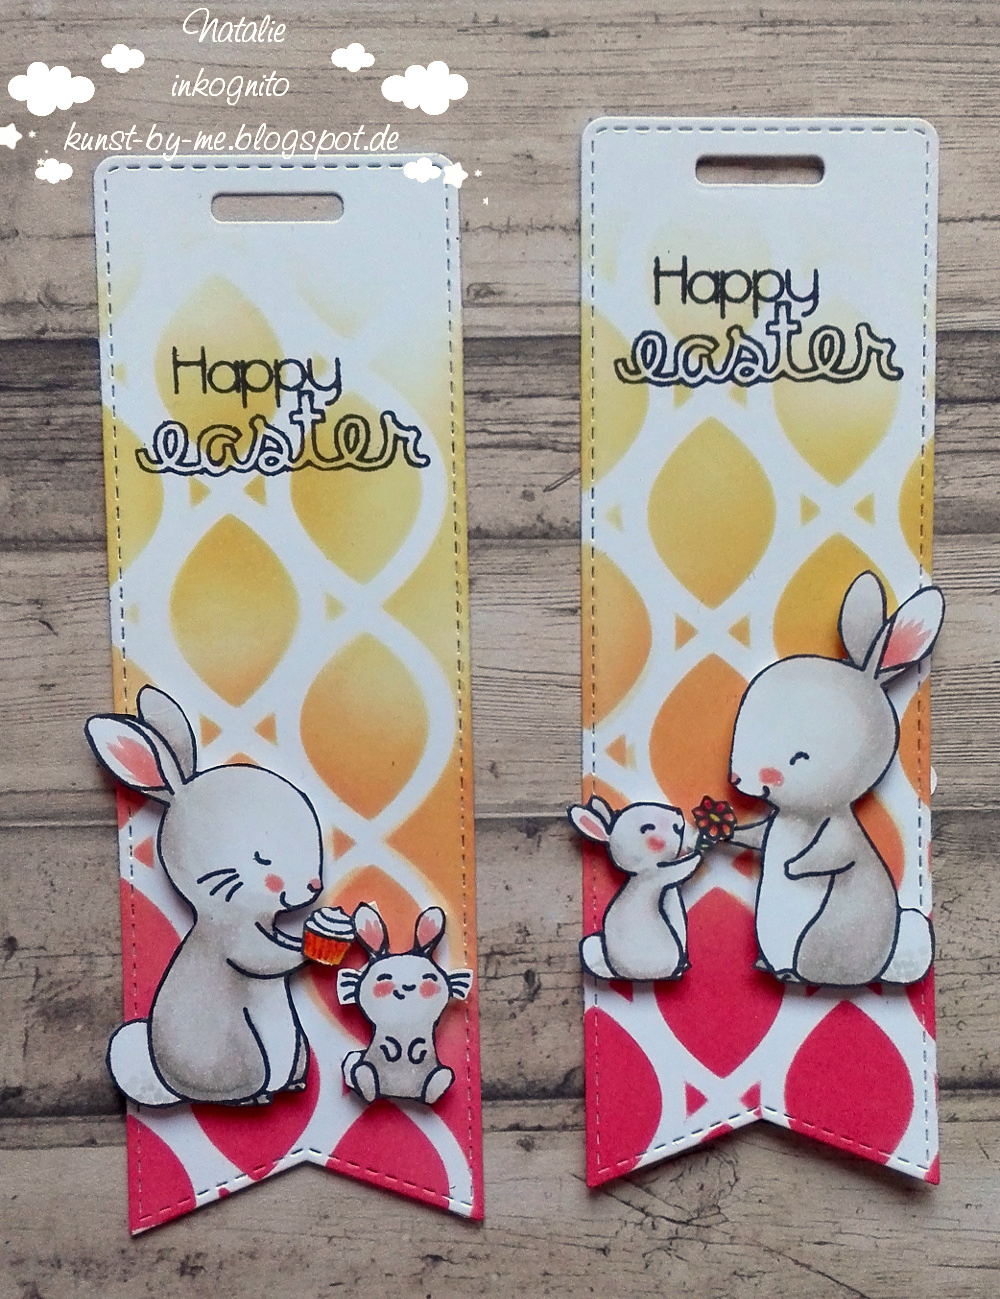 Inkognito Cards By Natalie Hoppy Easter